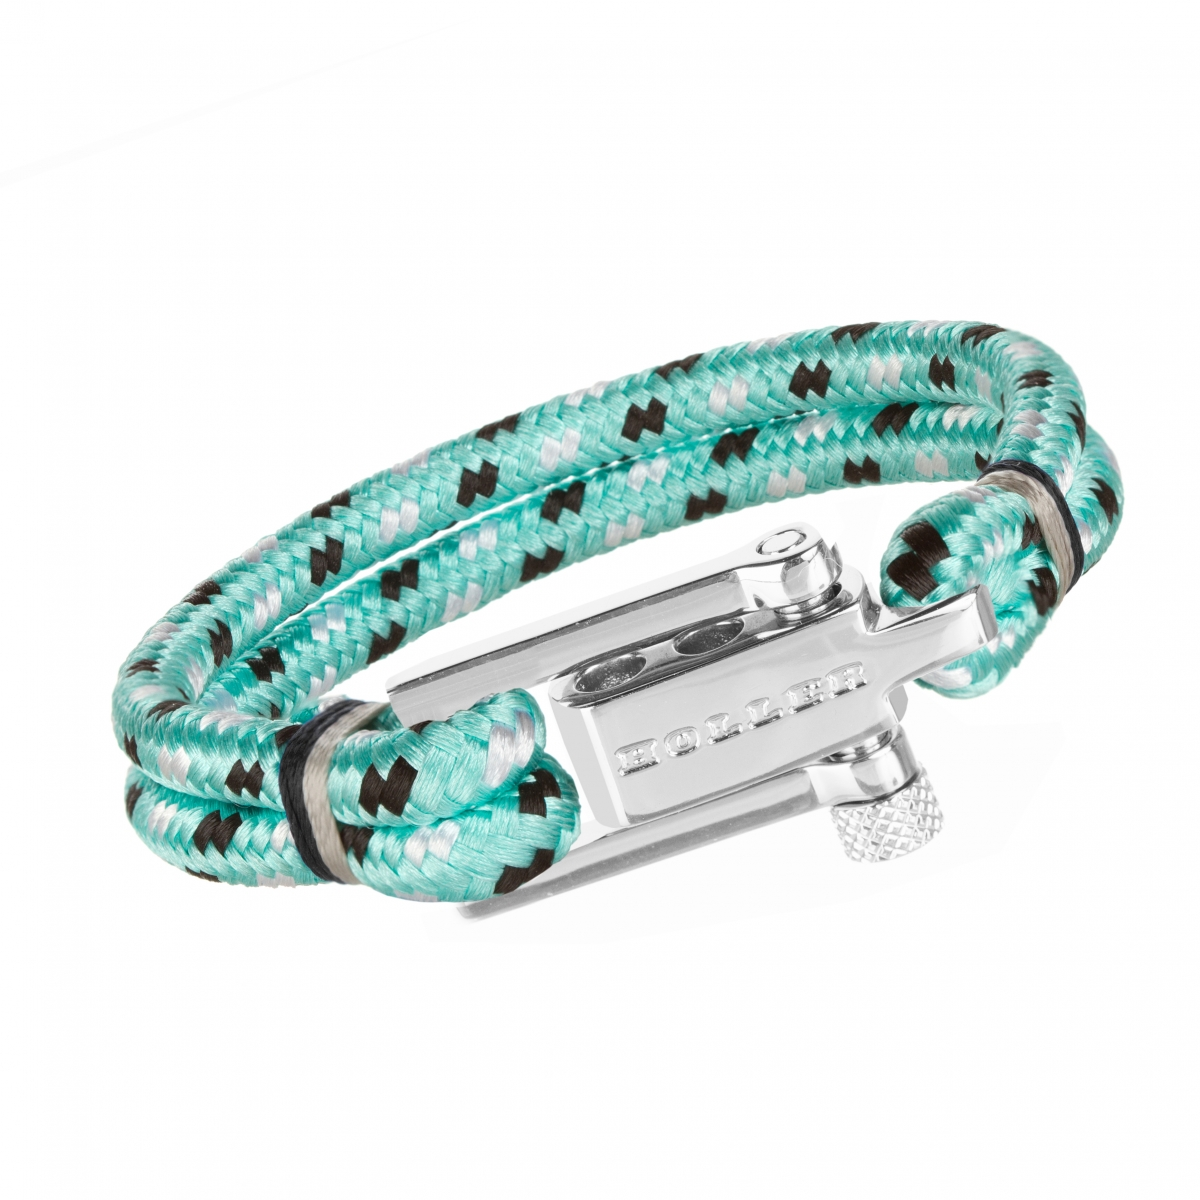 Mancha  Silver Polished U-Buckle / Mint Green Paracord Bracelet